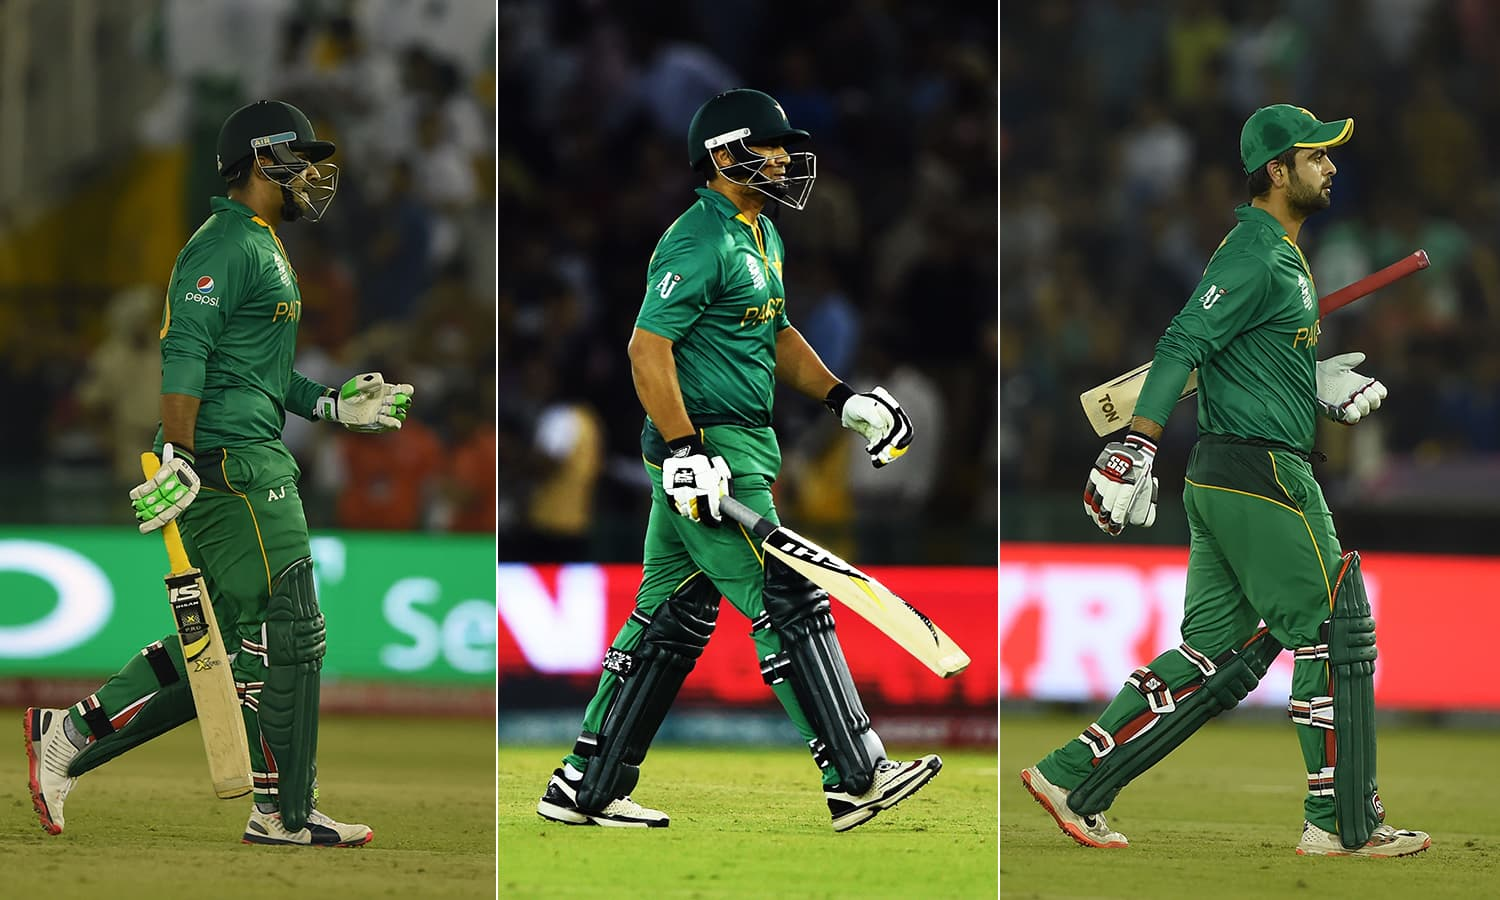 At the 2015 World Cup Pakistan were playing 90s-style ODI cricket, now they are playing 2000s ODI cricket, in T20.